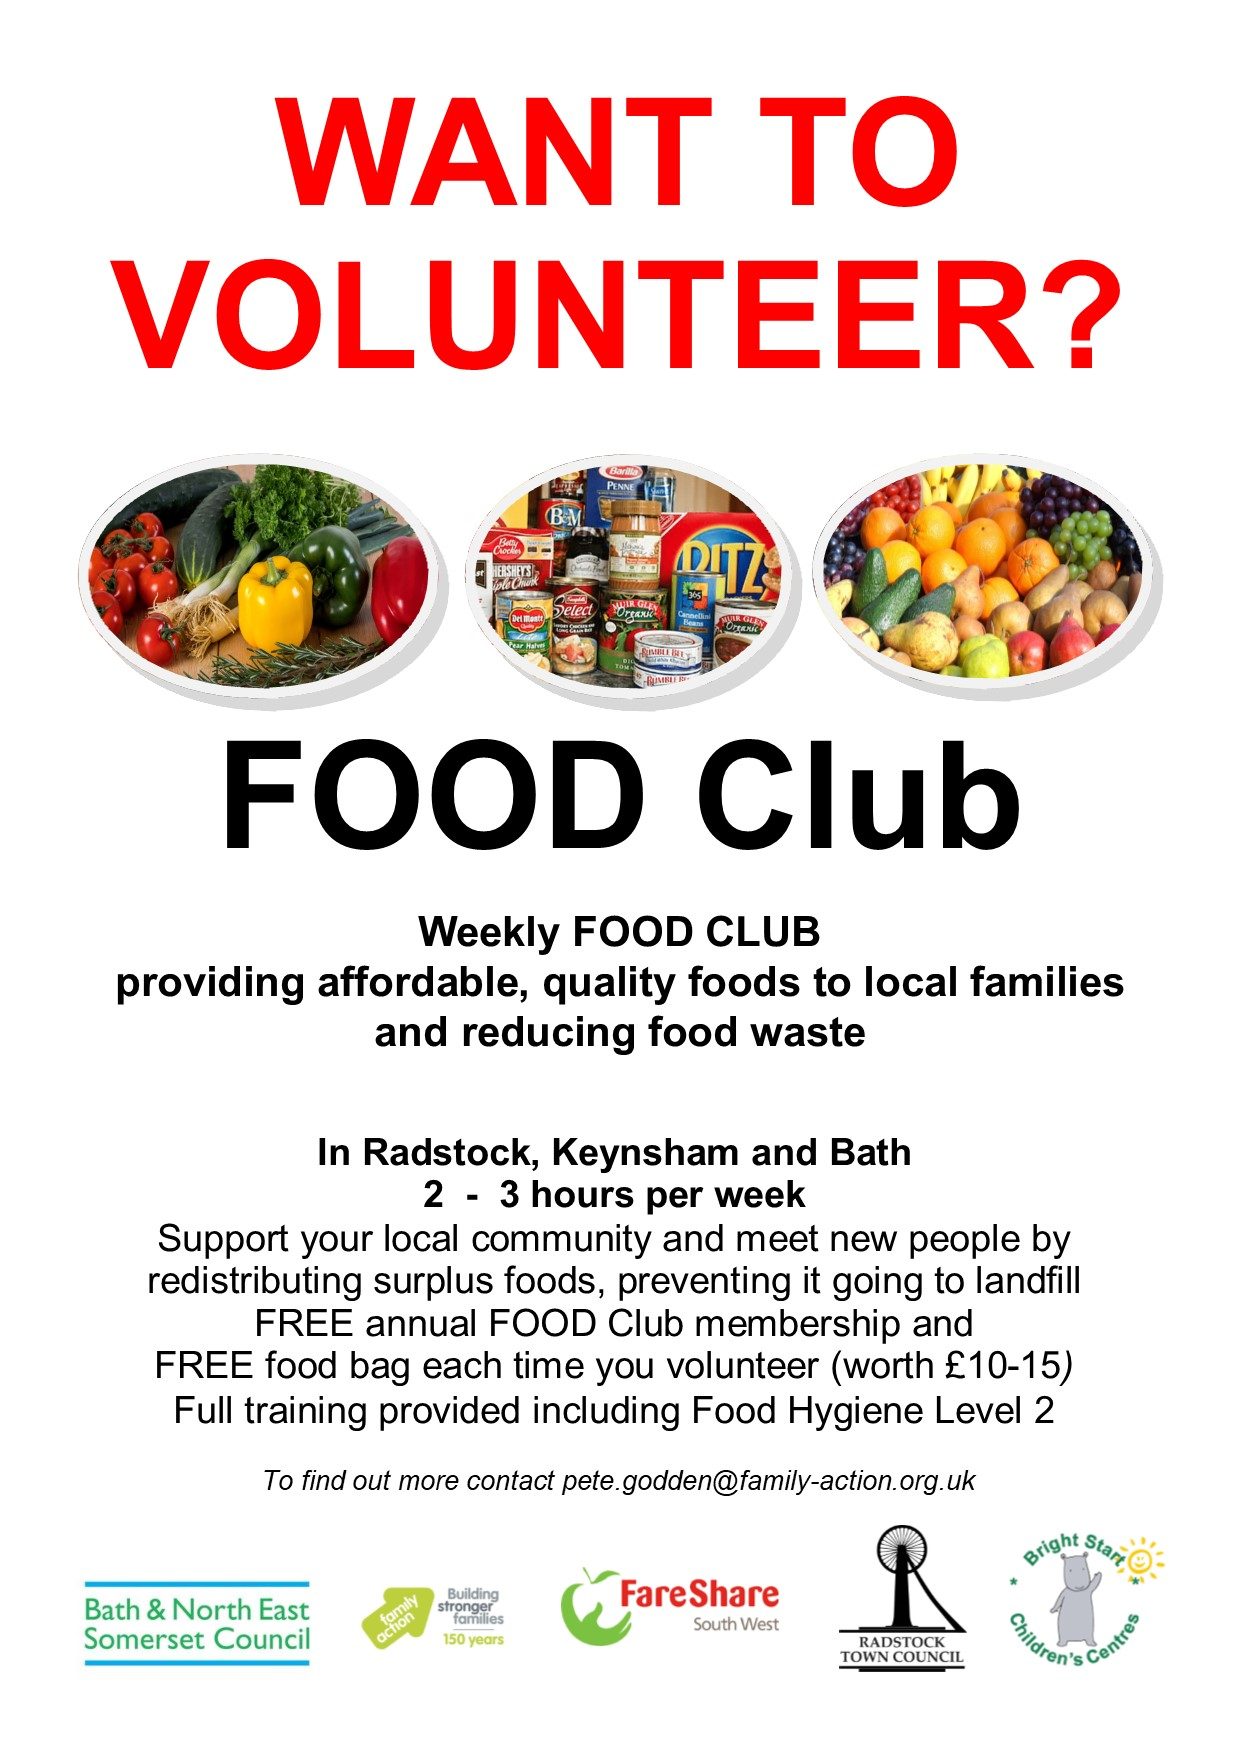 200804 FOOD Club Volunteer recruitment poster